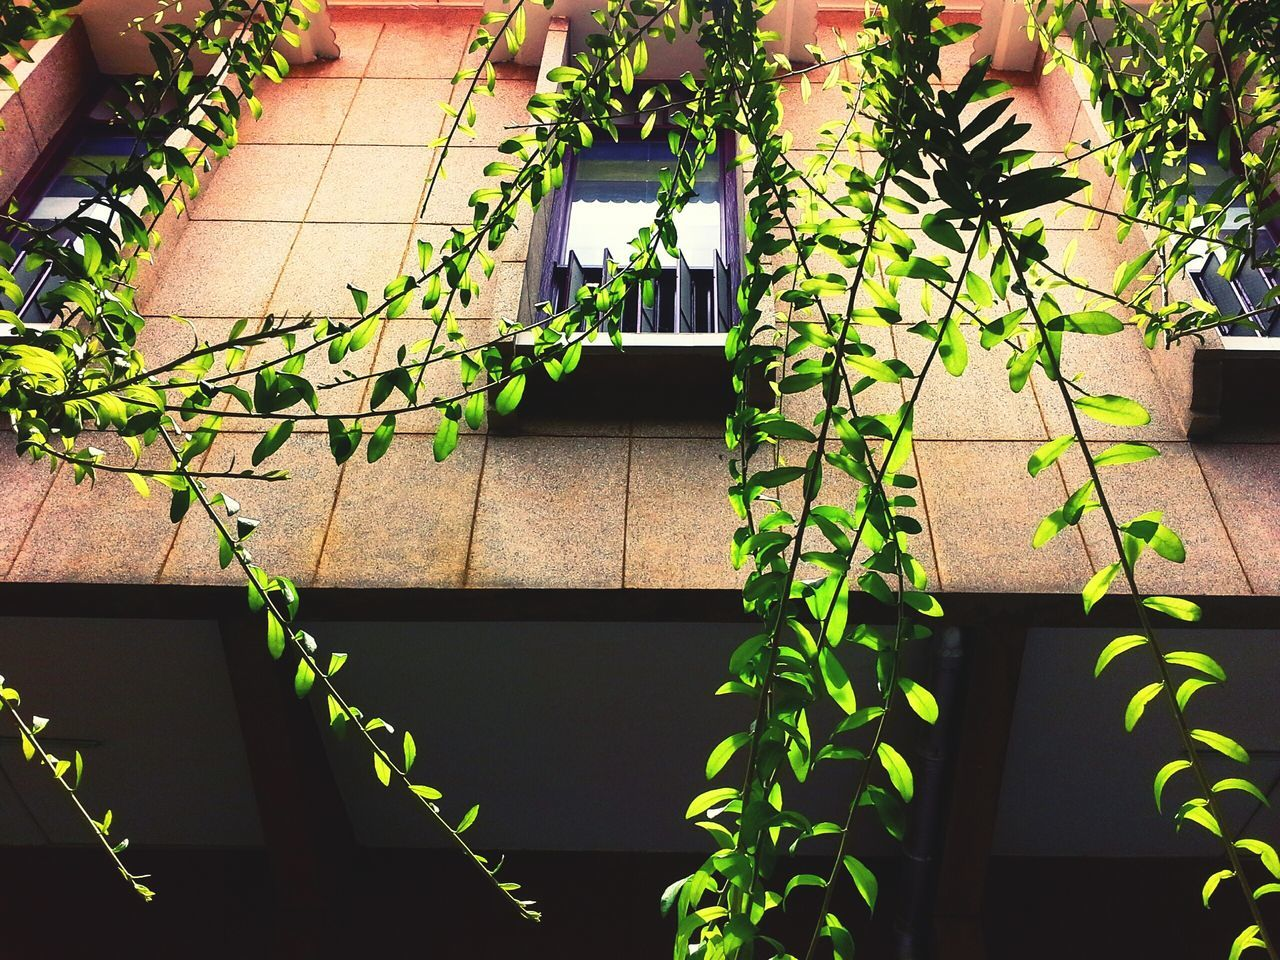 plant, growth, leaf, ivy, outdoors, nature, day, no people, close-up